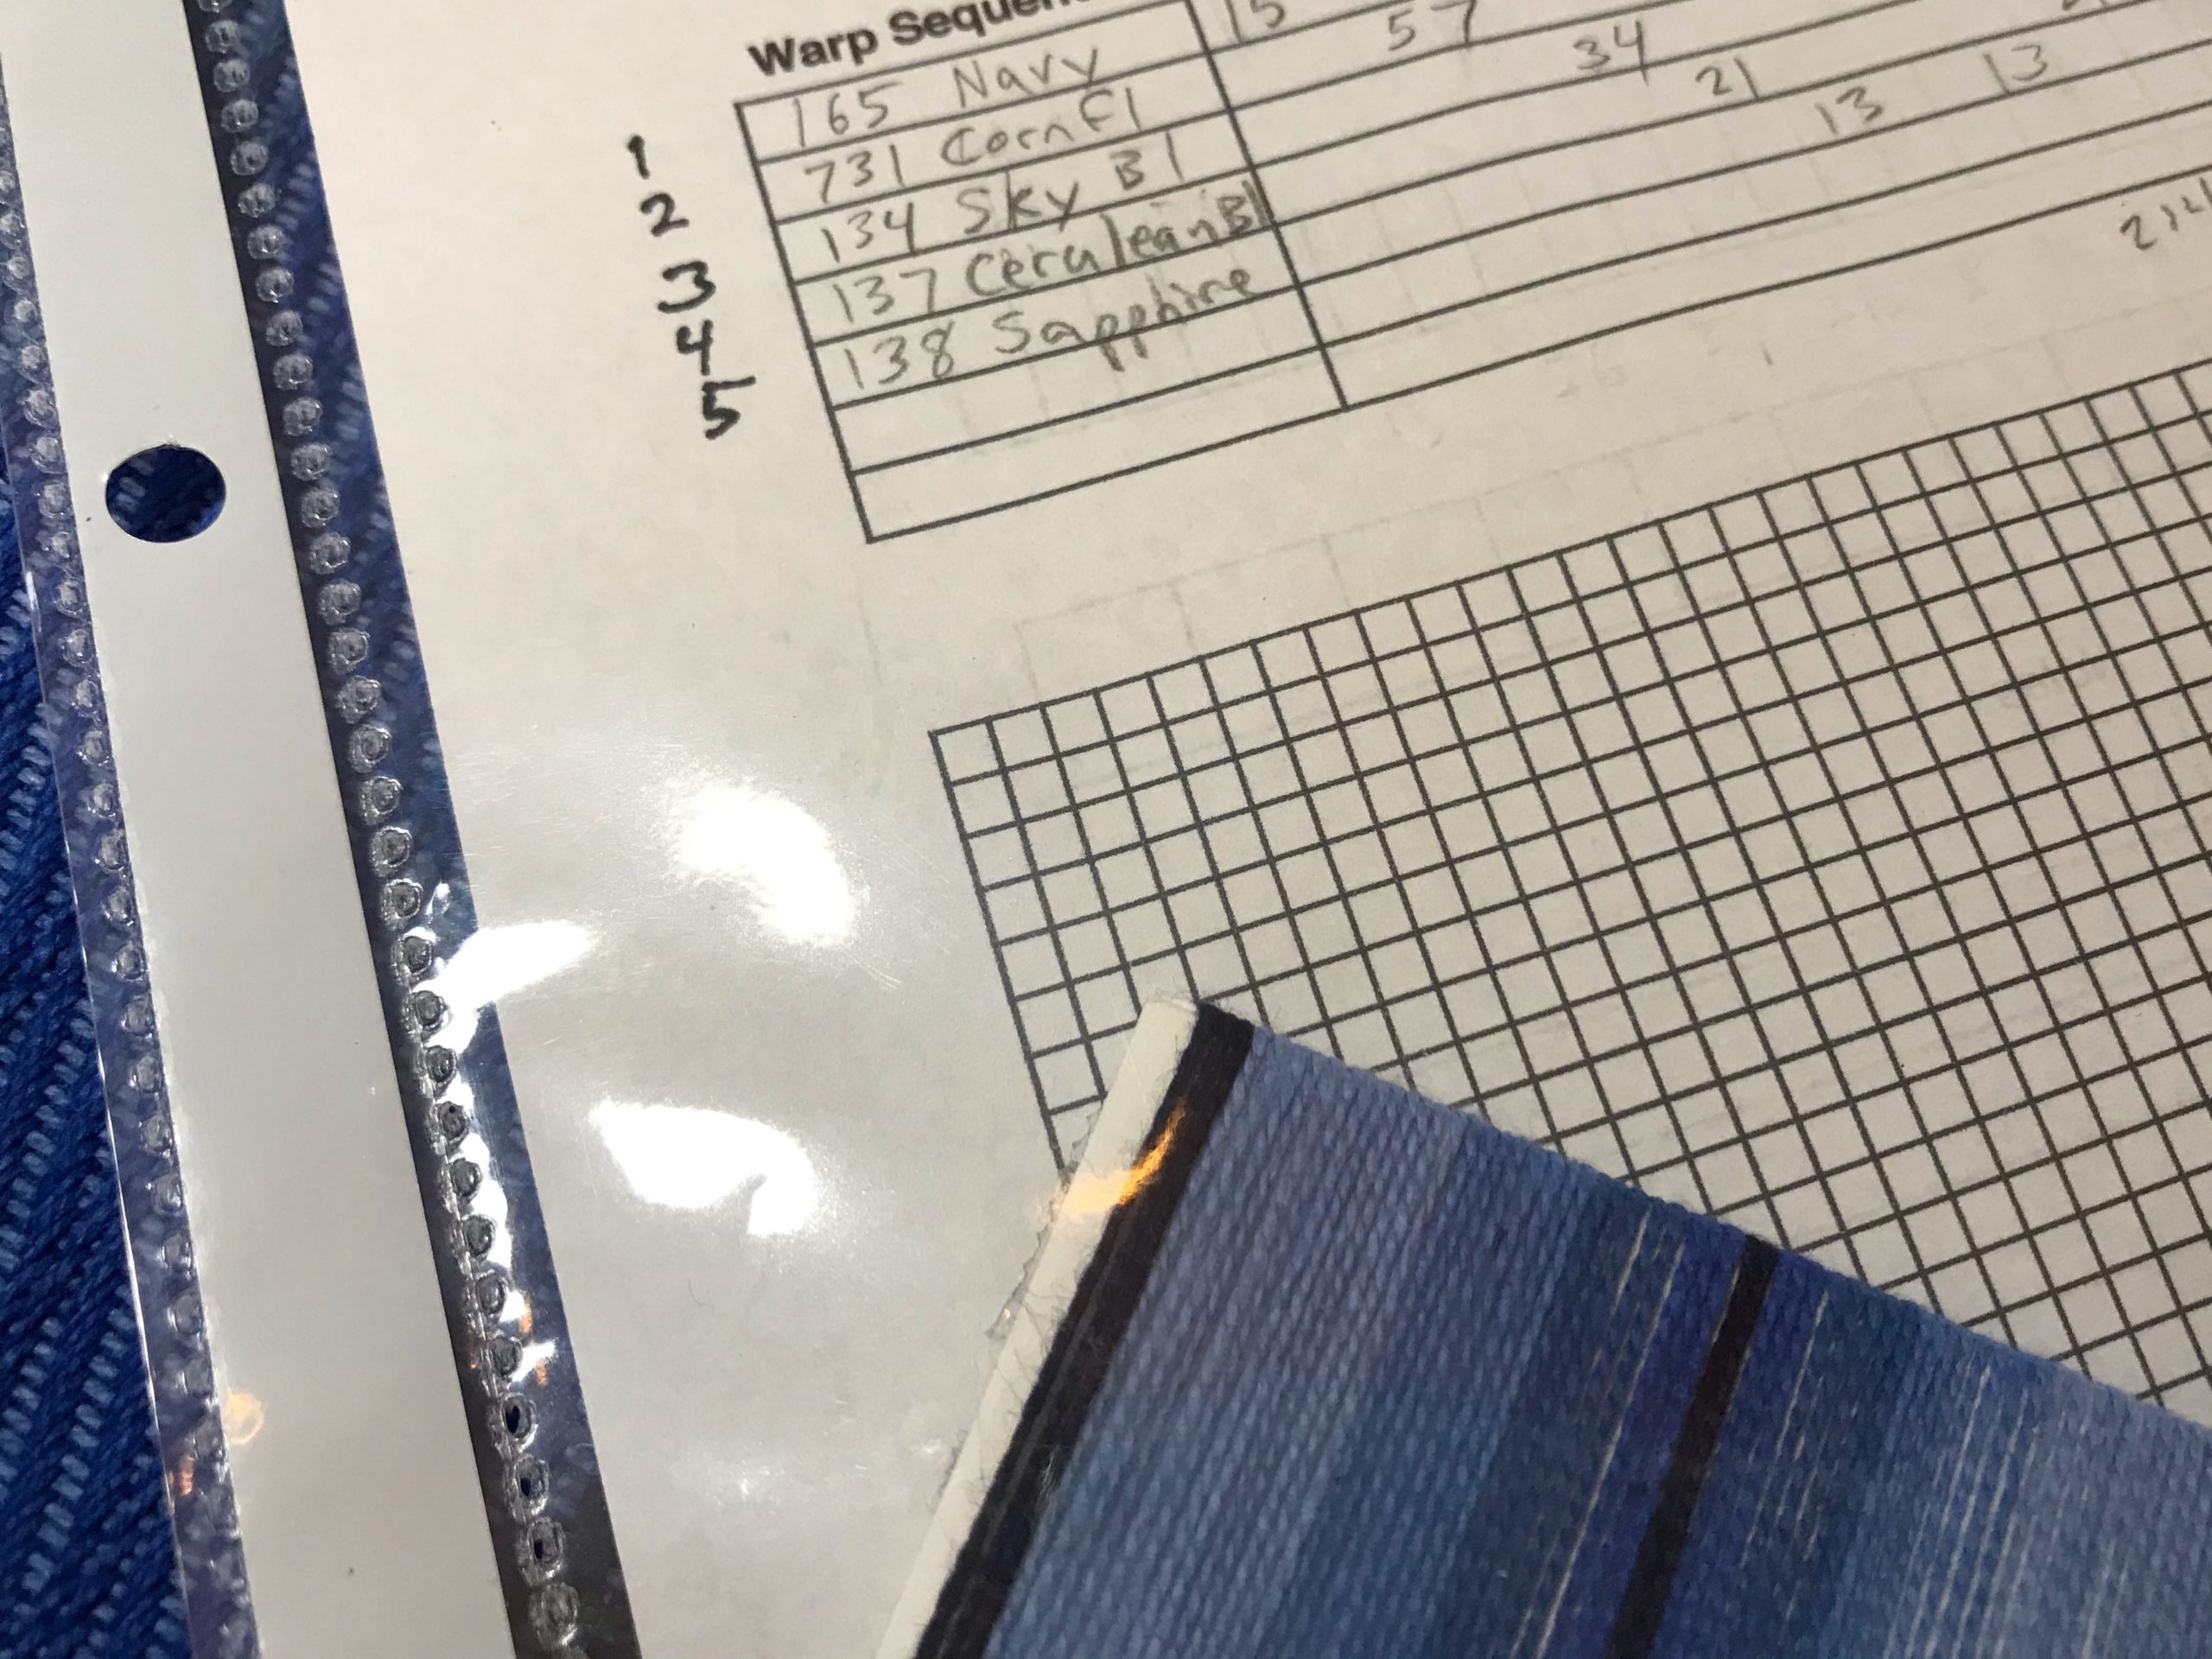 Project Notes for weaving with 5 blues.